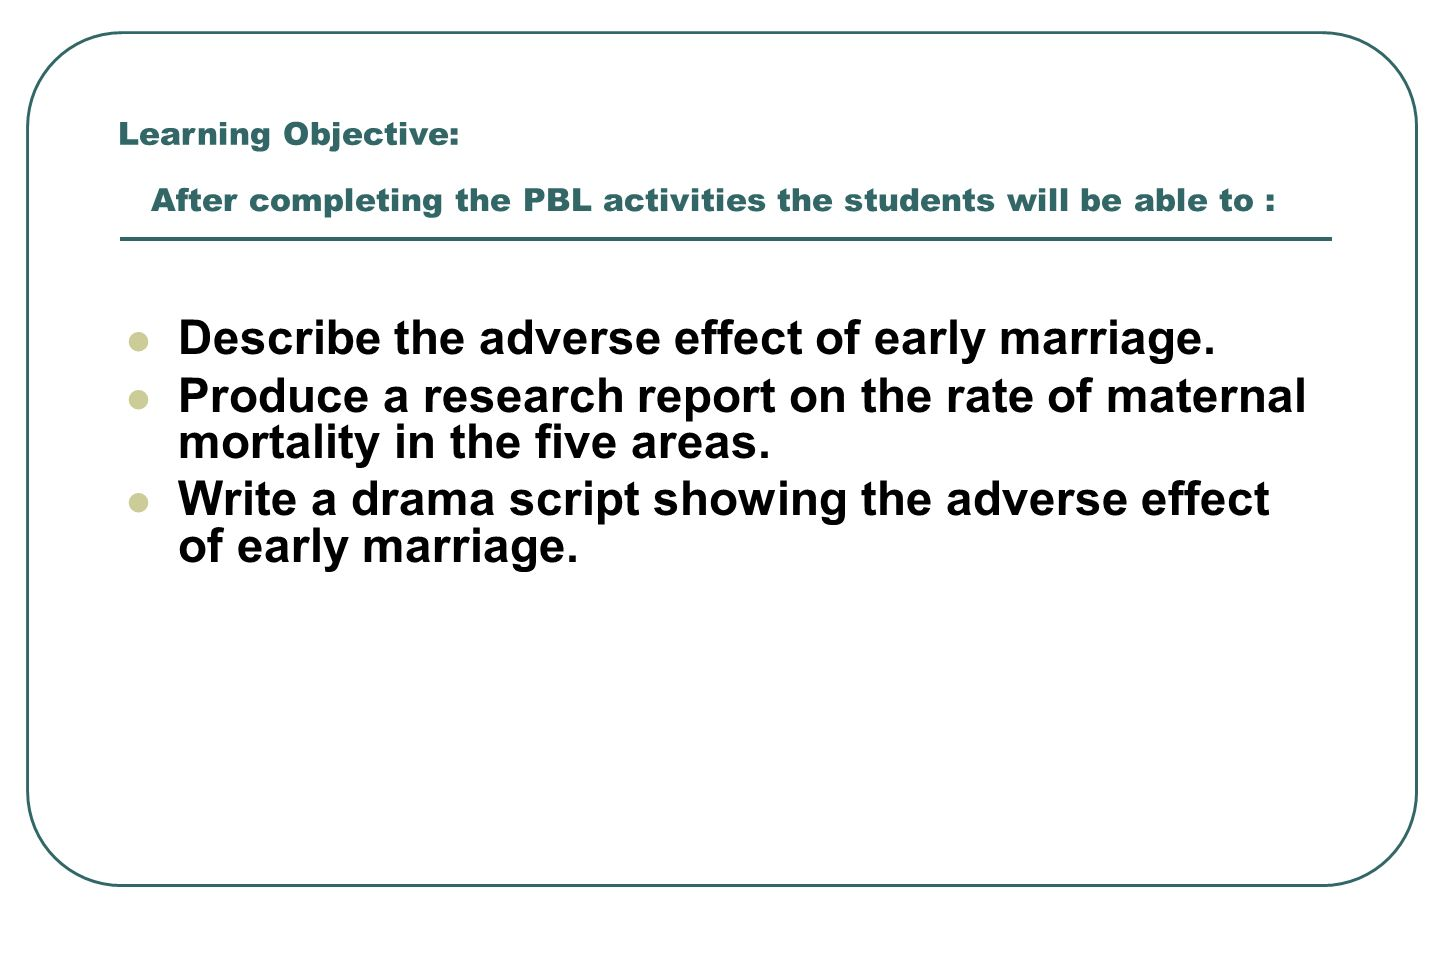 After completing the PBL activities the students will be able to : Describe the adverse effect of early marriage. Produce a research report on the rat